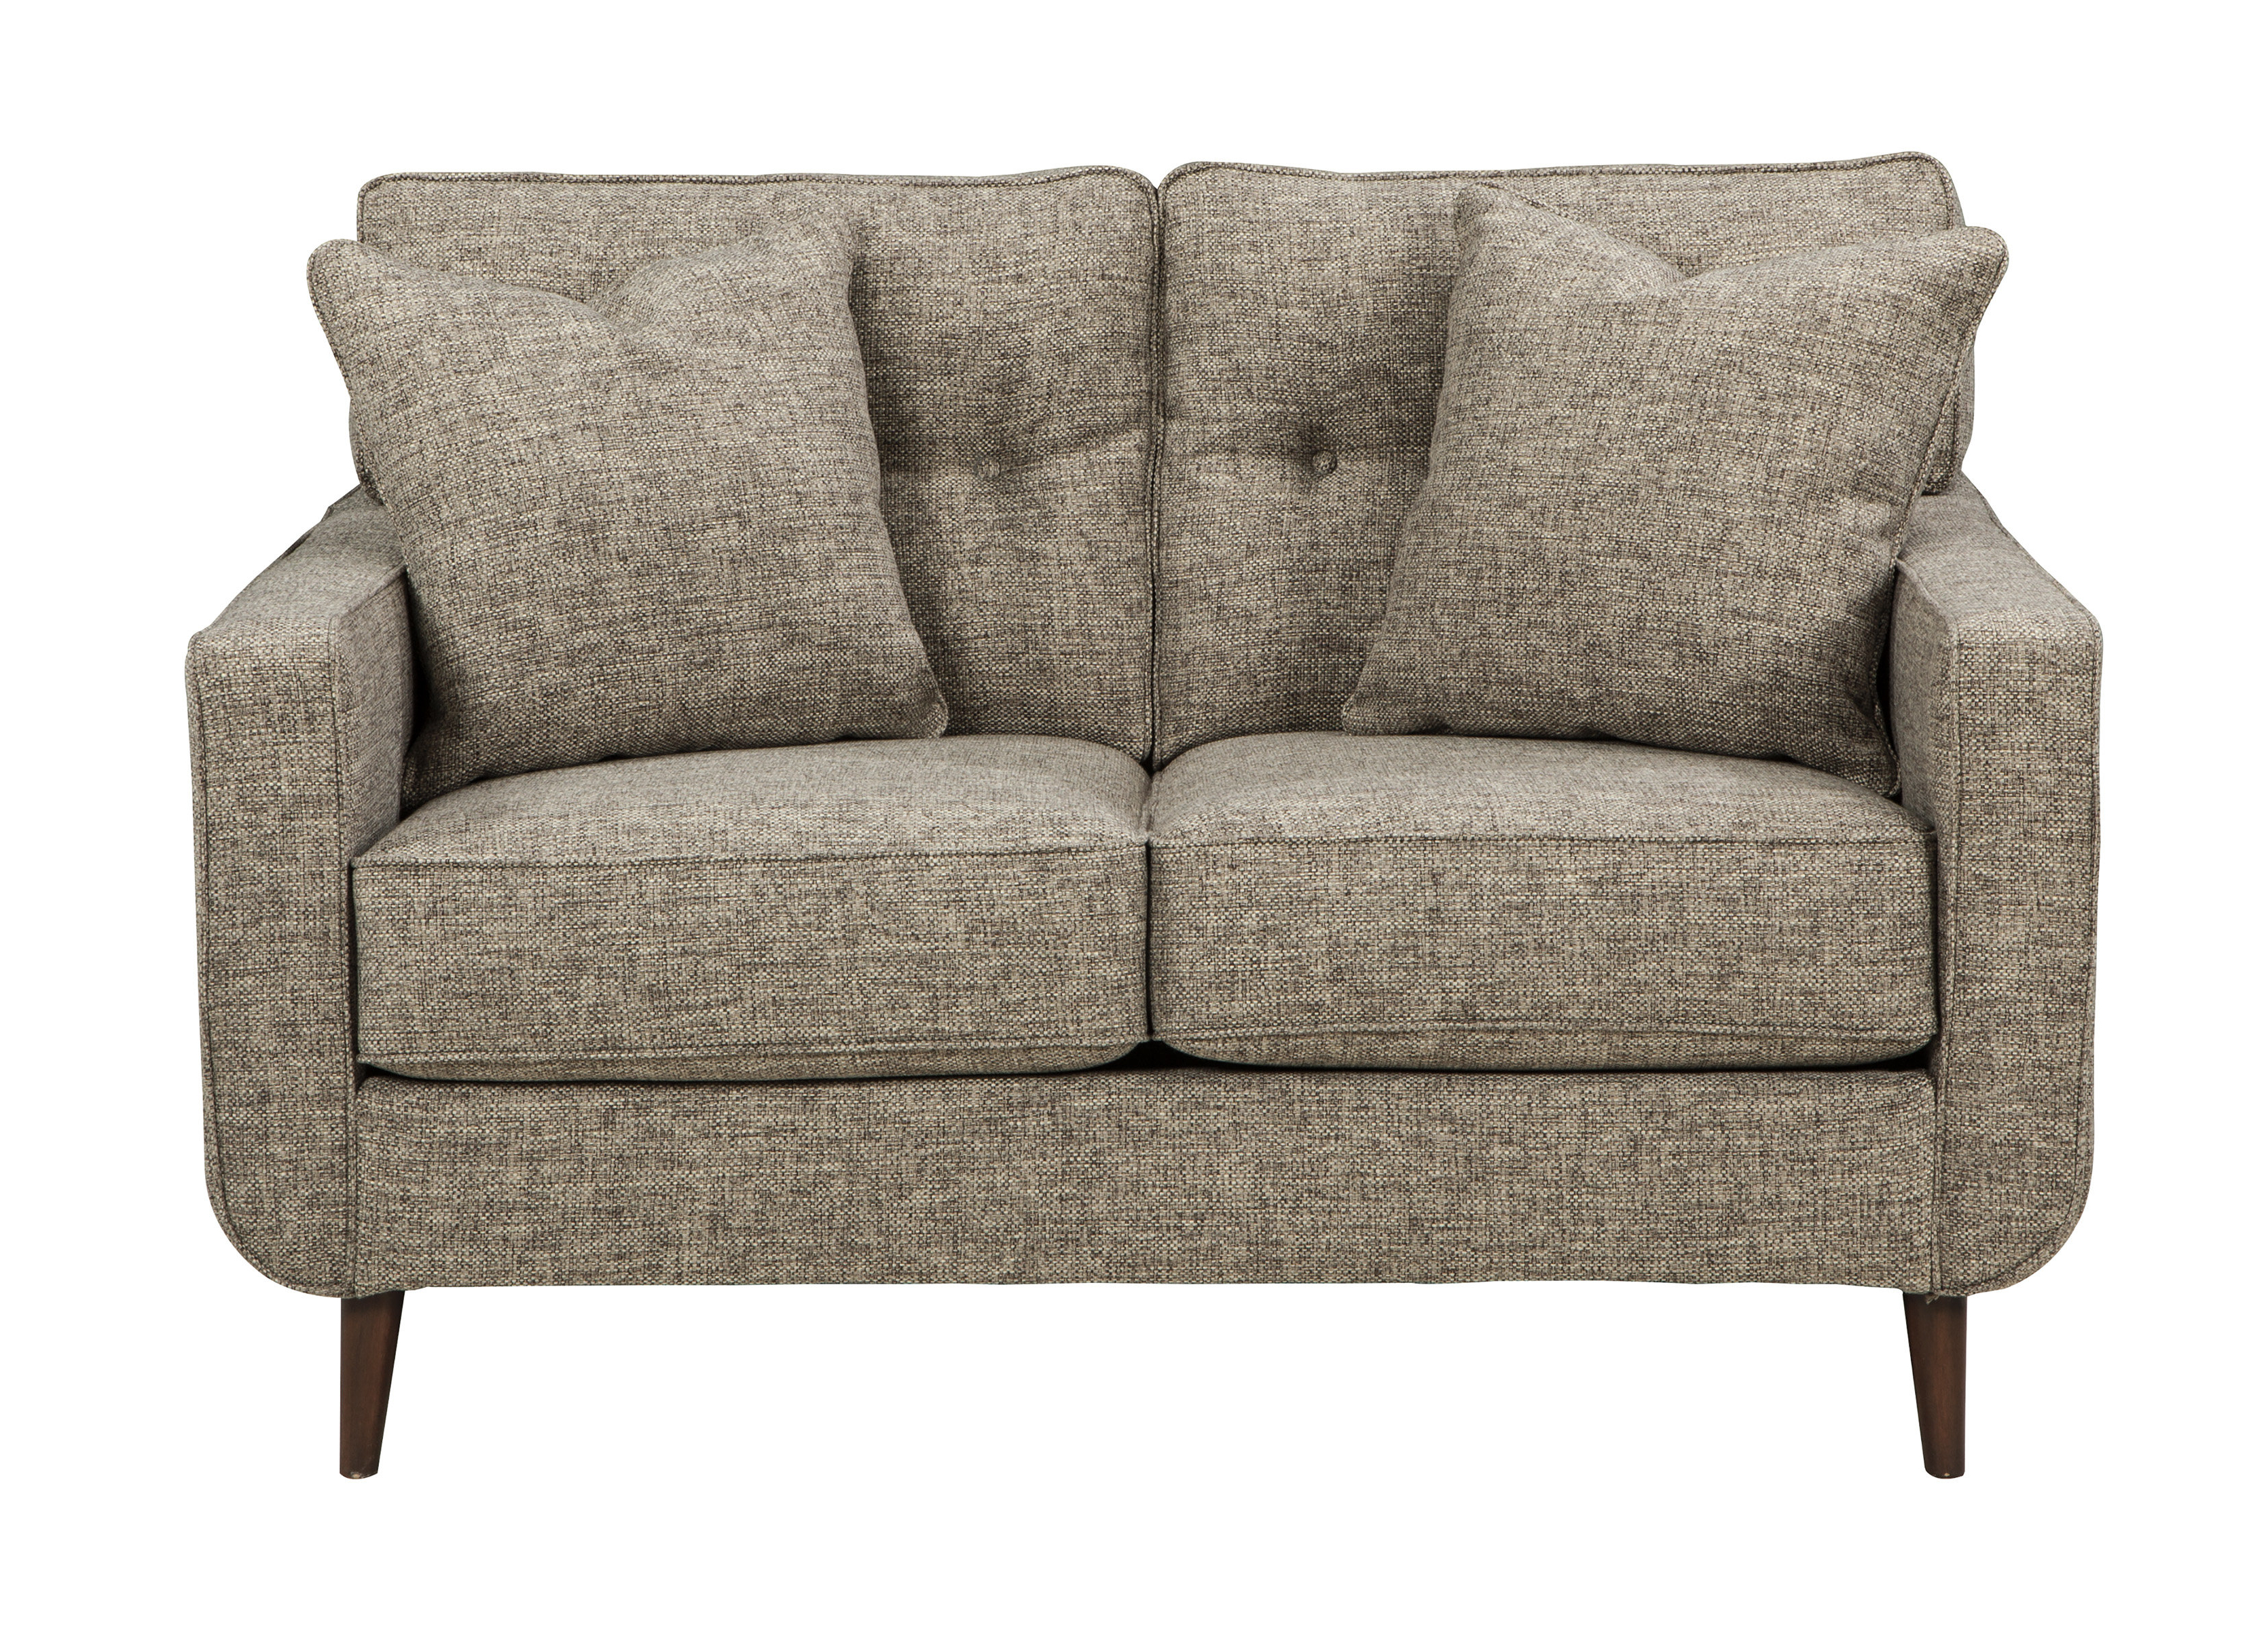 Allmodern Throughout Grandin Leather Sofa Chairs (View 8 of 20)